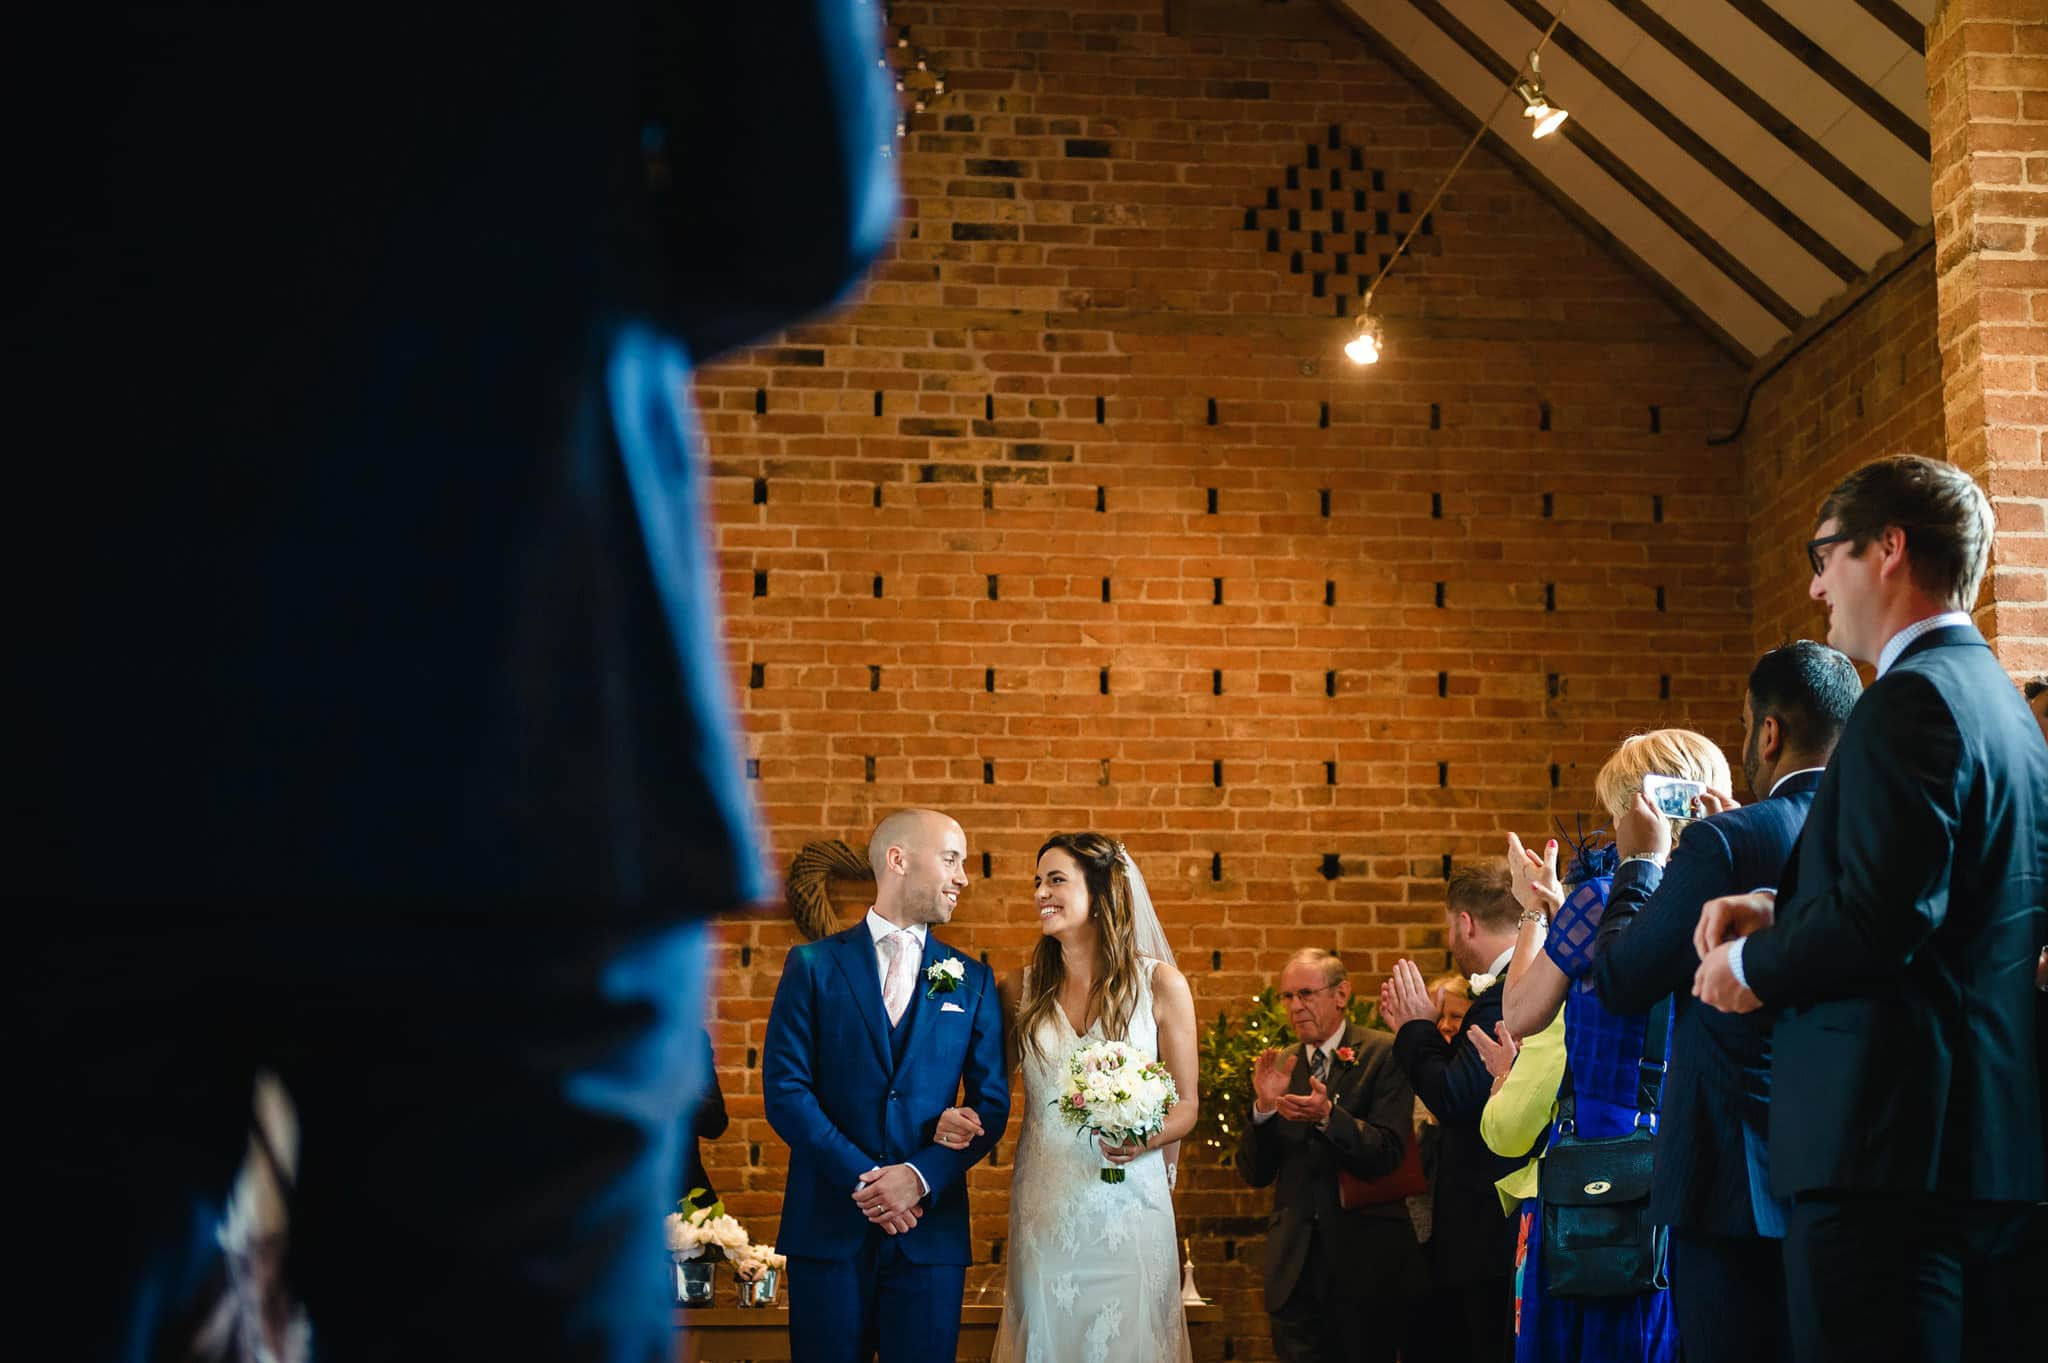 Wedding at Redhouse Barn in Stoke Prior, Worcestershire 67